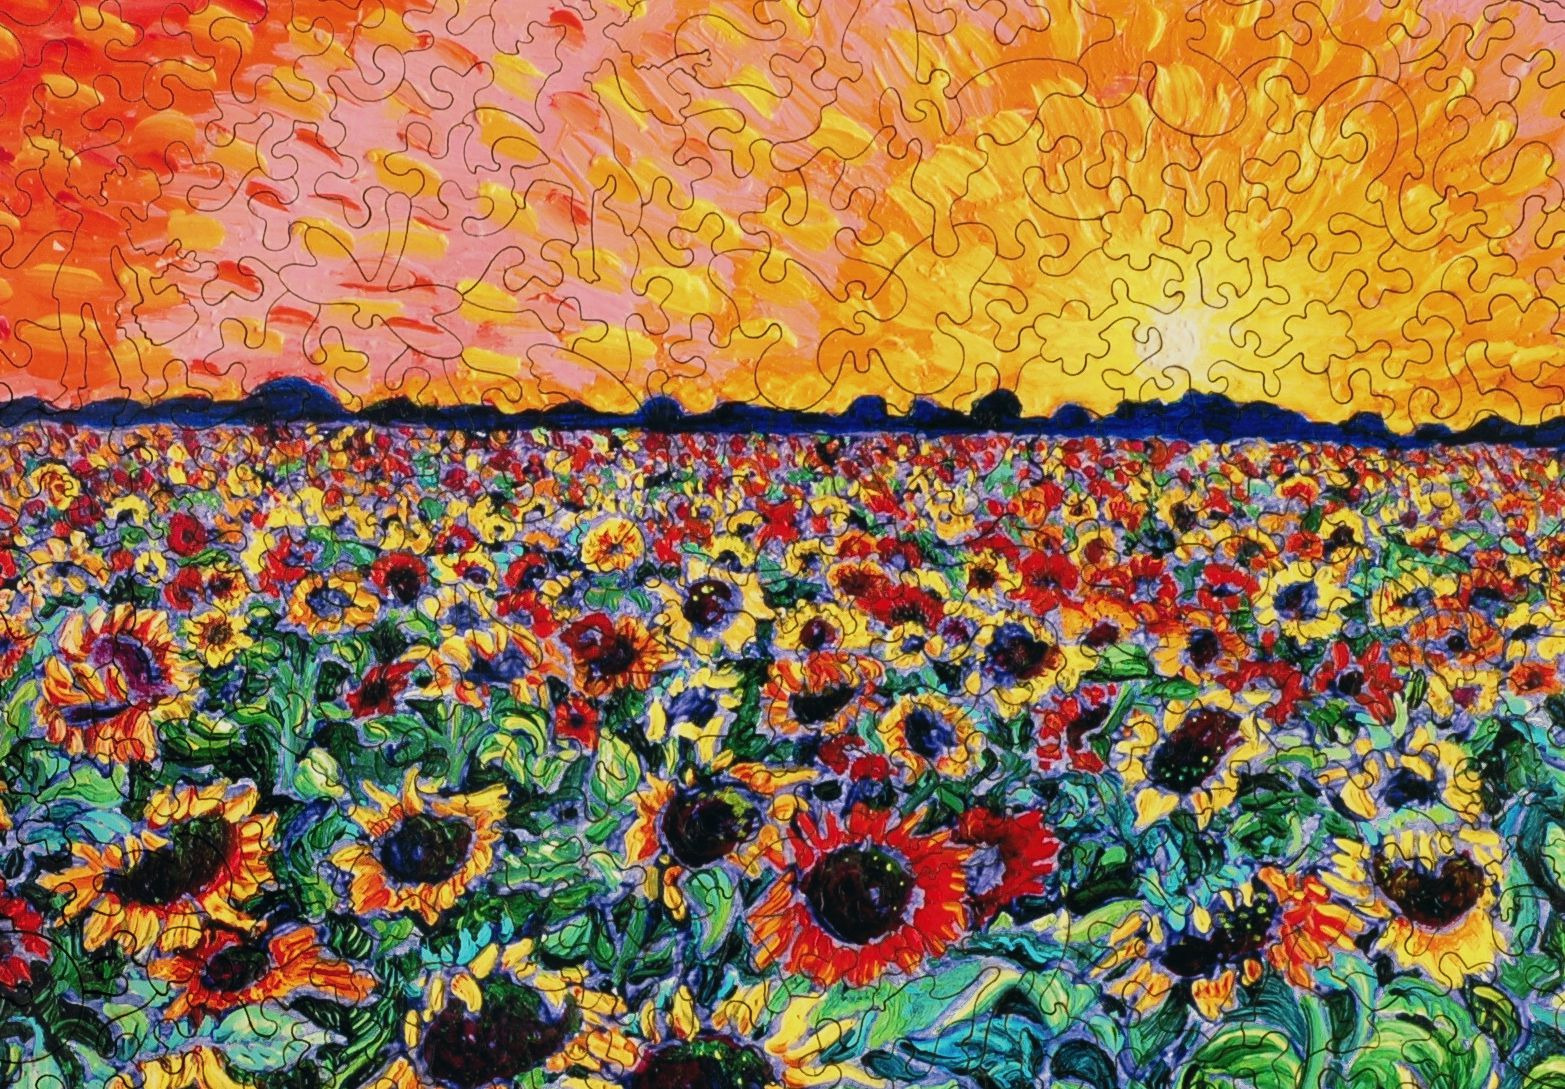 sunflower splatter paint wooden jigsaw puzzle liberty puzzles